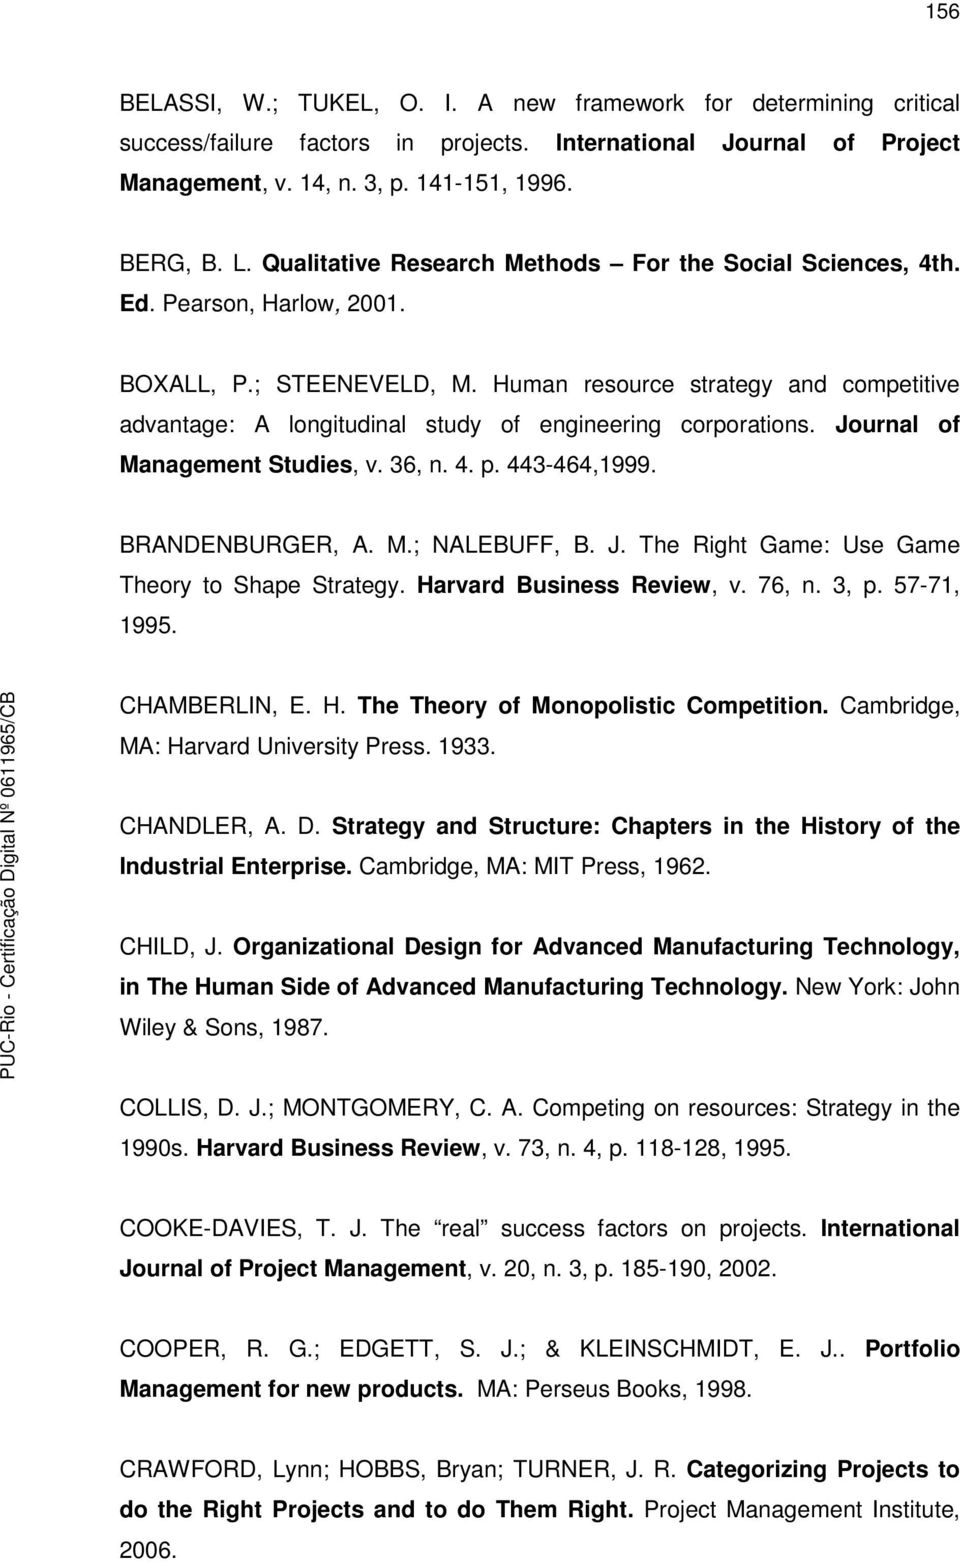 Human resource strategy and competitive advantage: A longitudinal study of engineering corporations. Journal of Management Studies, v. 36, n. 4. p. 443-464,1999. BRANDENBURGER, A. M.; NALEBUFF, B. J. The Right Game: Use Game Theory to Shape Strategy.